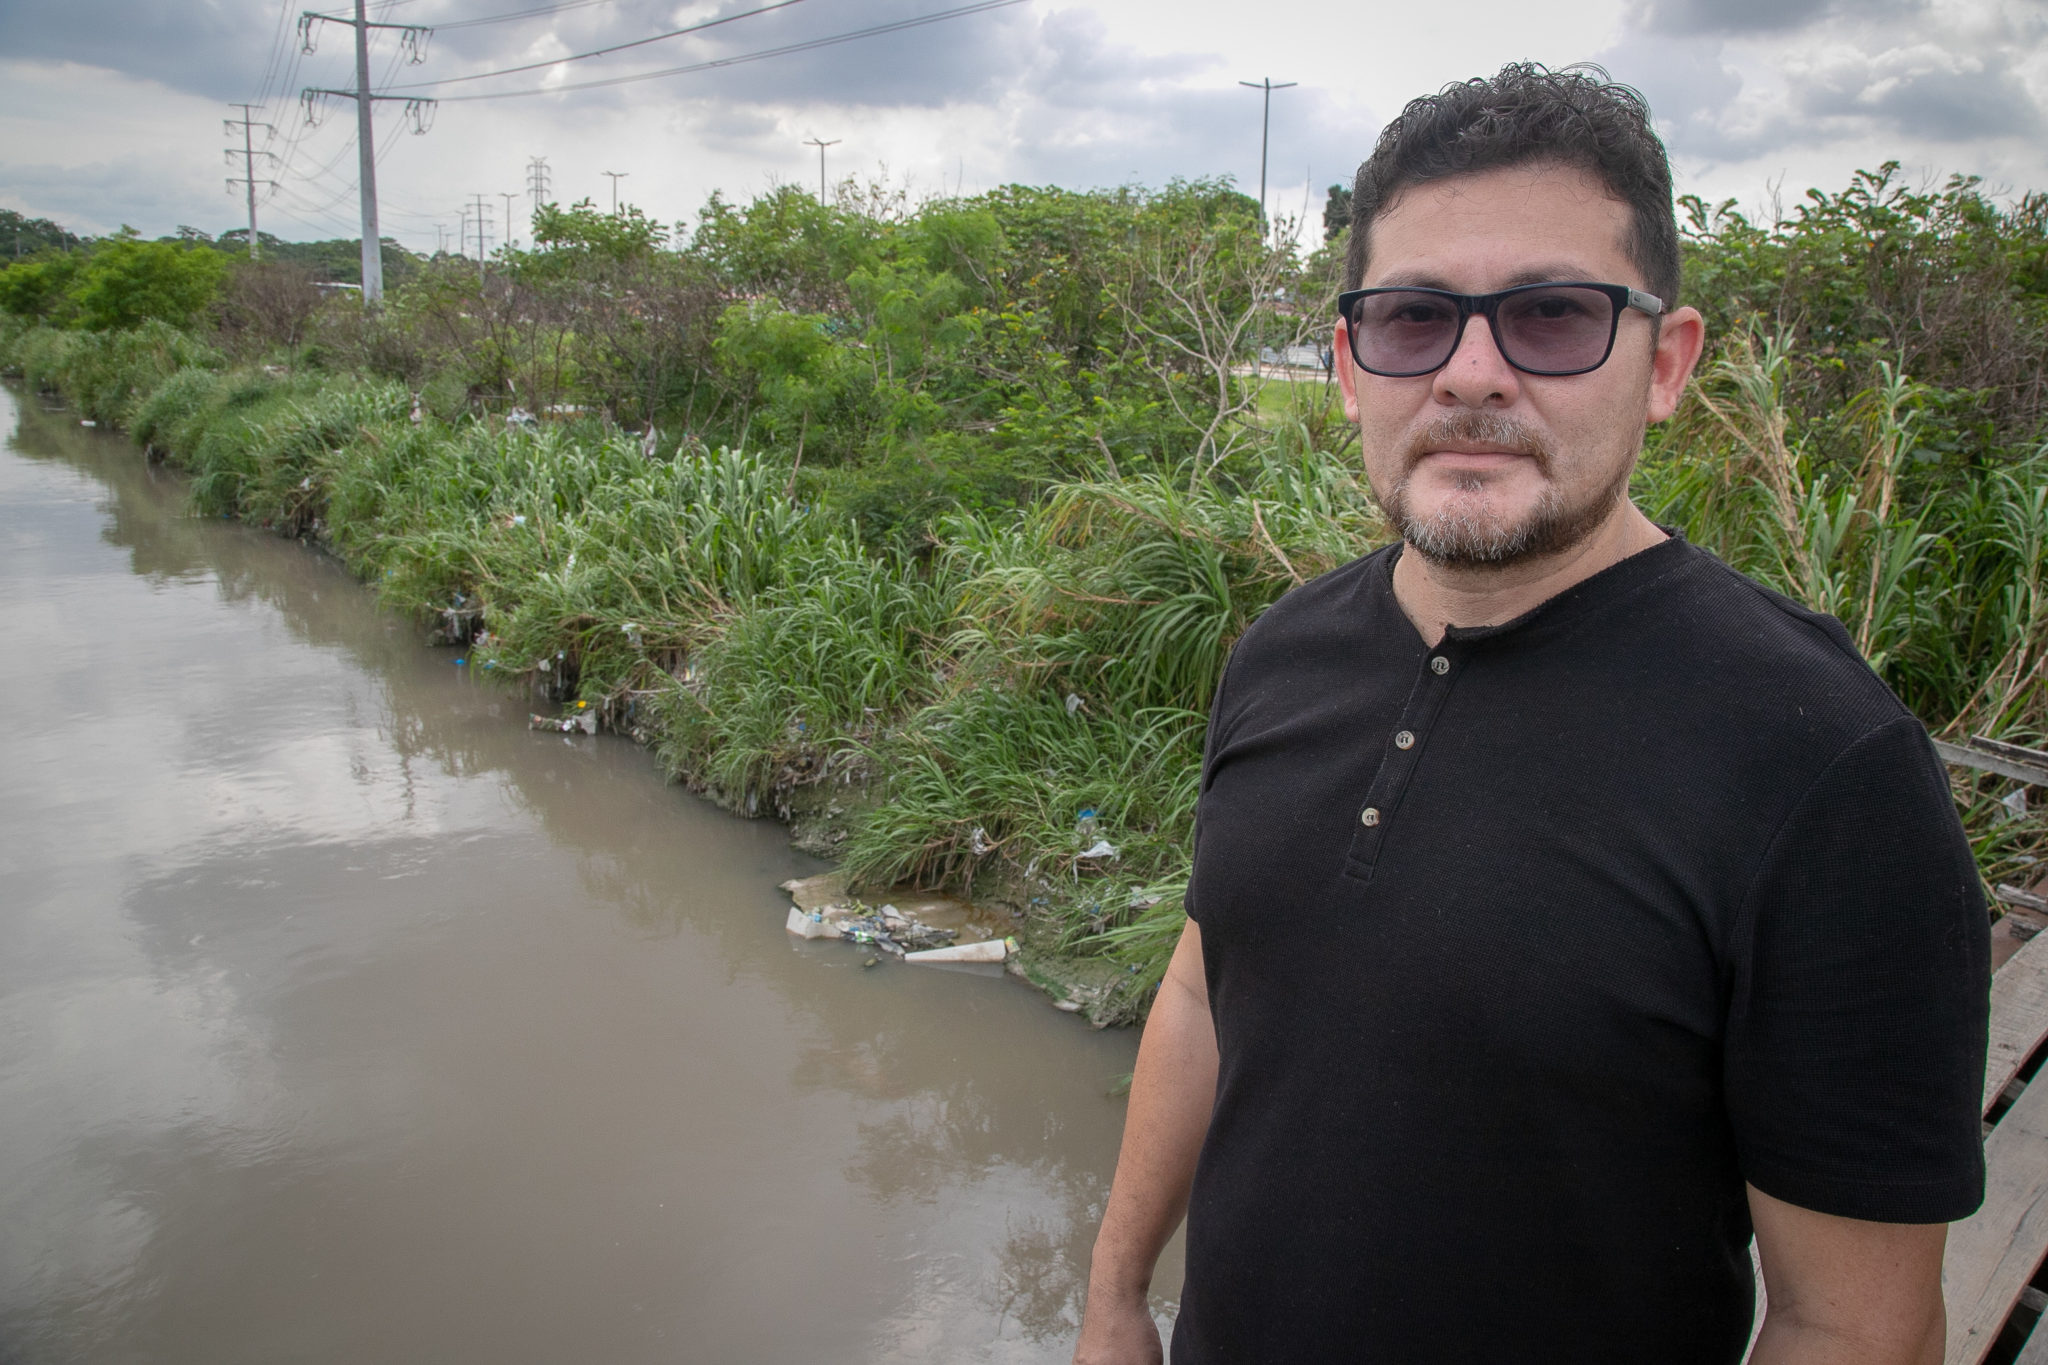 Marcos Castro, a professor of geography at the Federal University of Amazonas (UFAM), poses for a photo in the riverbank of Educandos river in the city of Manaus. Image by César Nogueira.